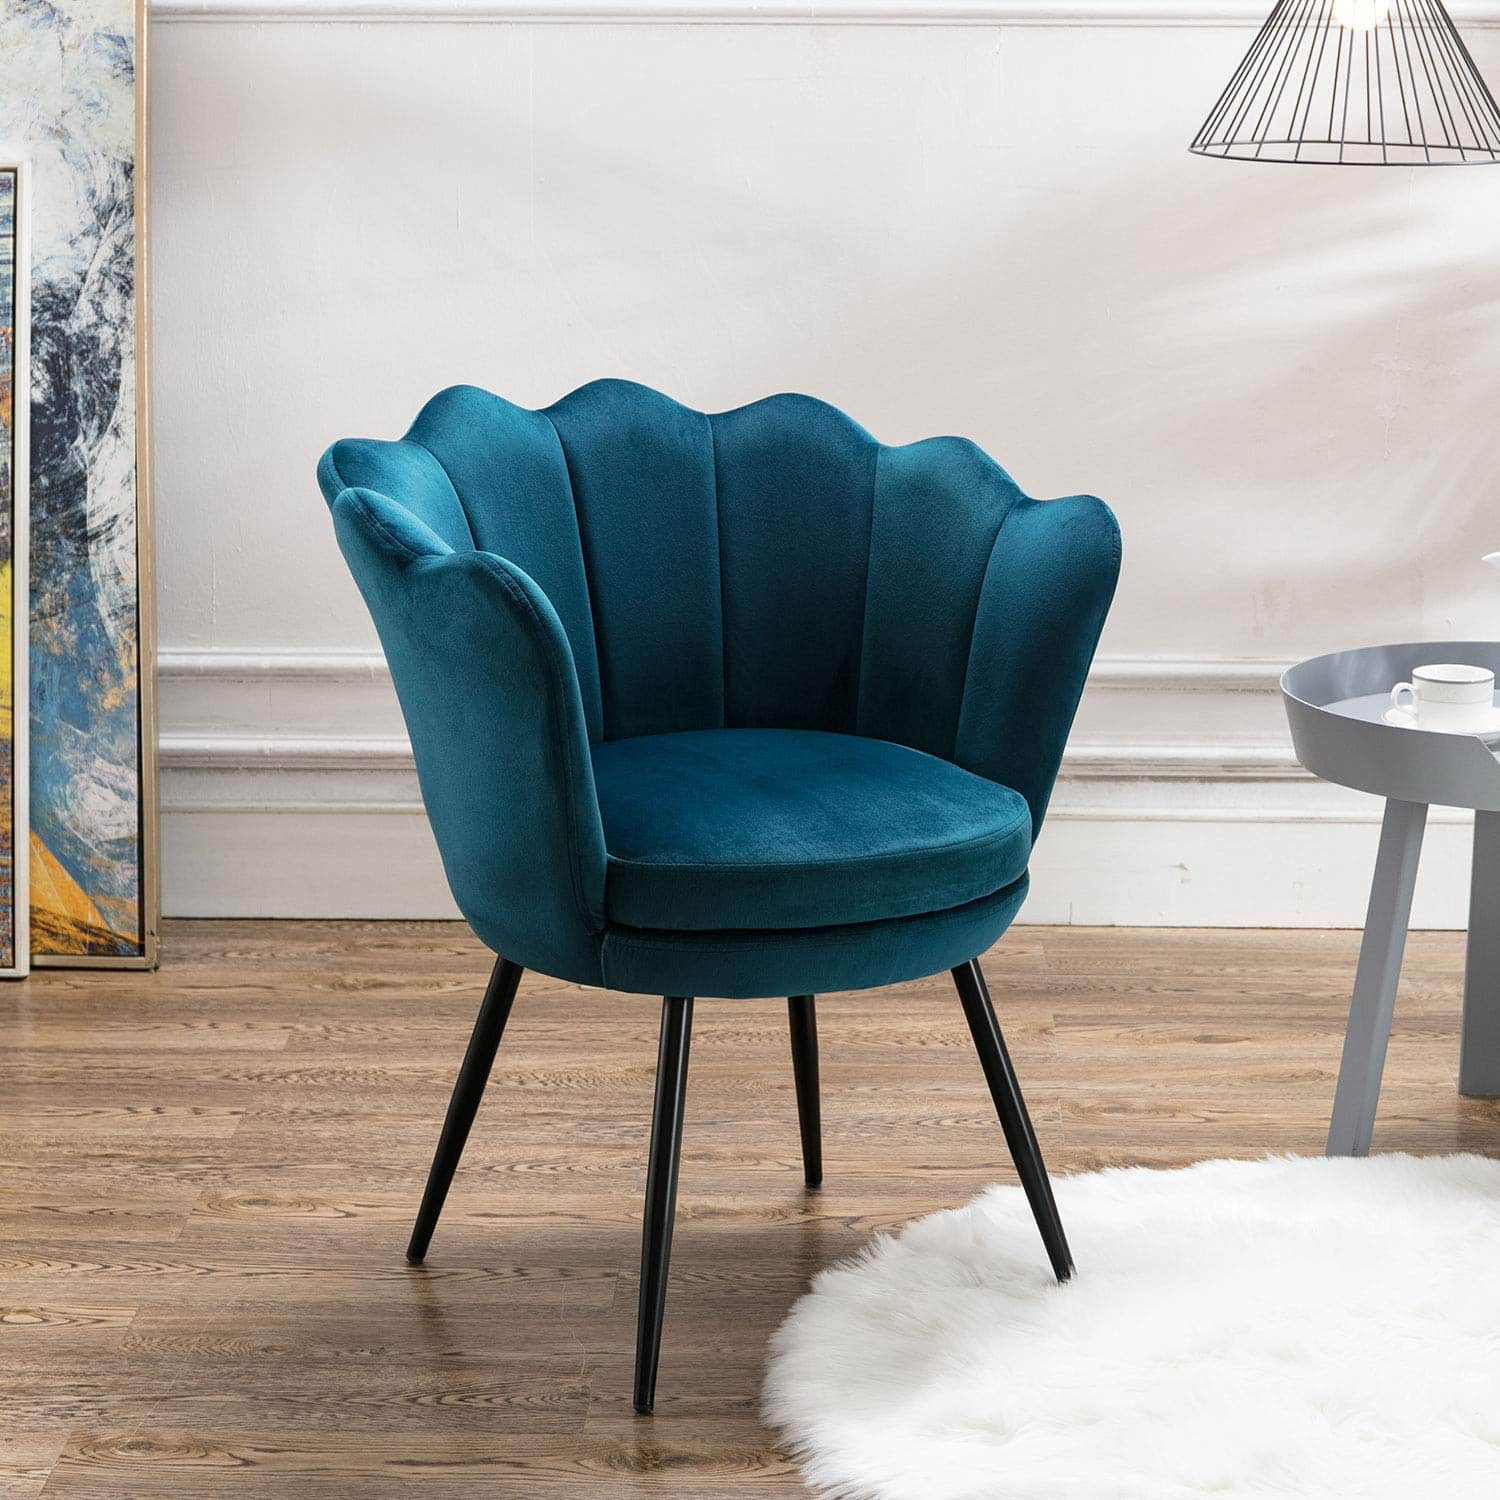 cool-chairs-shell